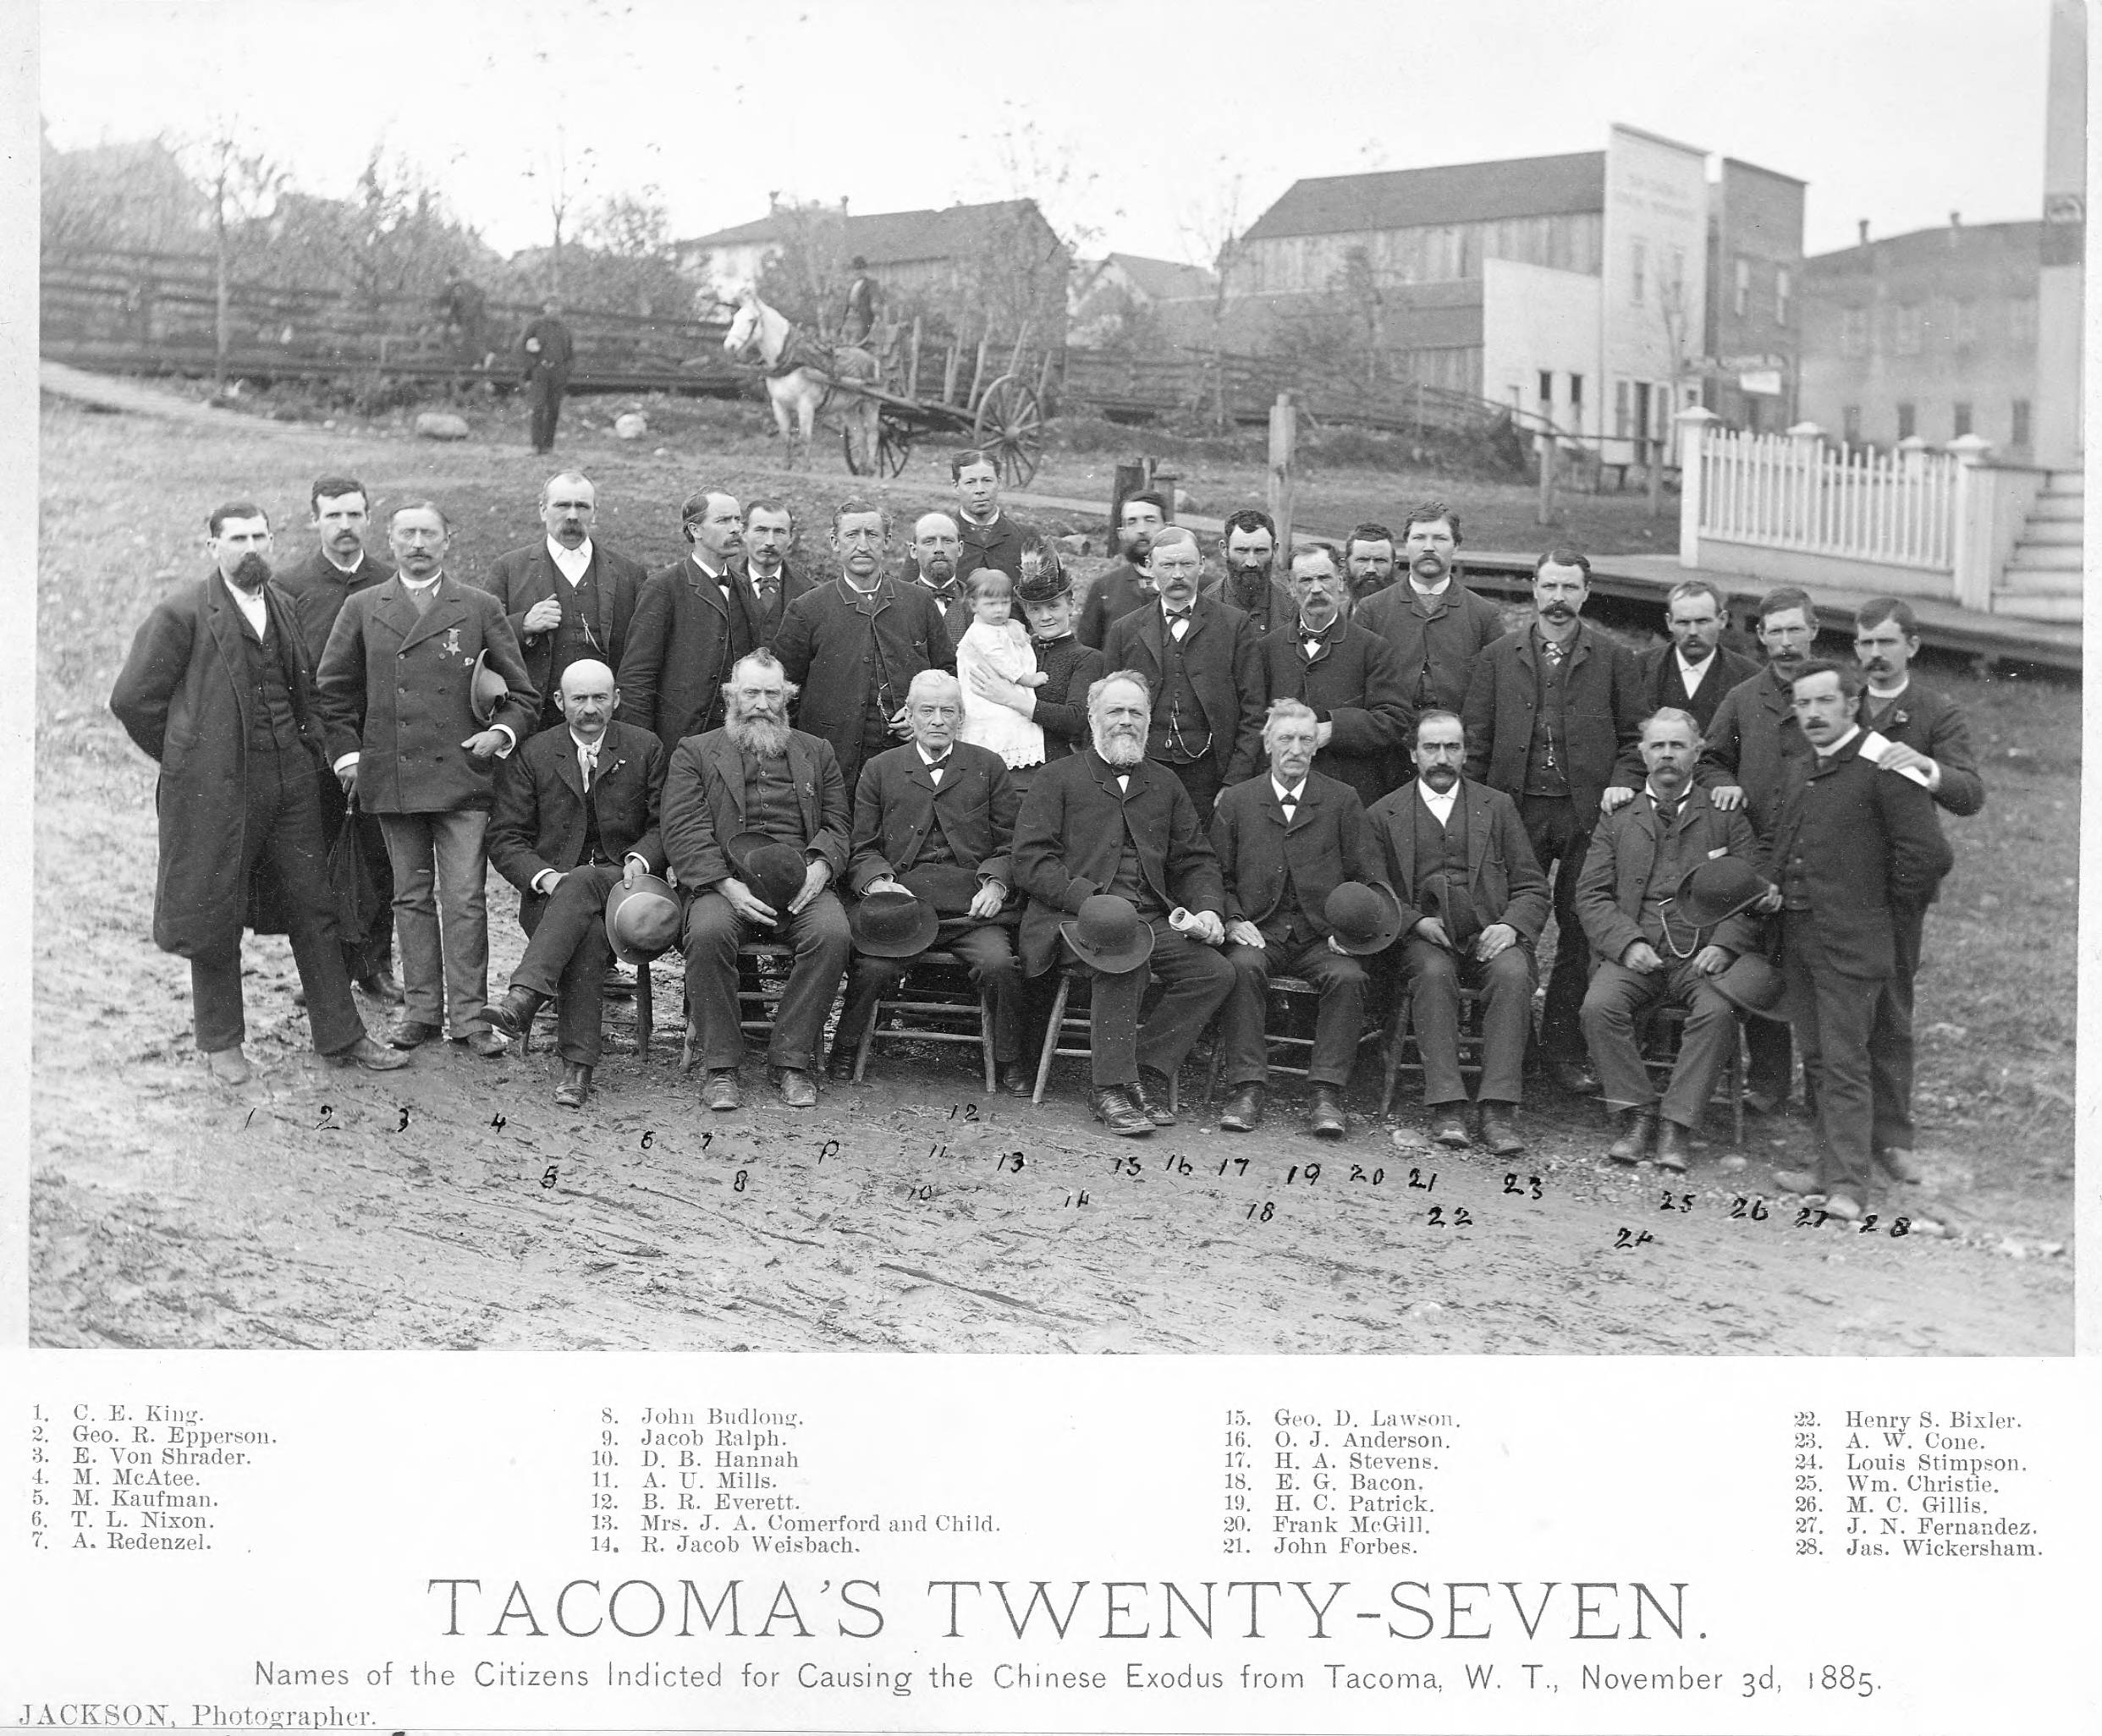 A group photograph of the original 27 Tacoma men indicted for the events of November 3rd, 1885.